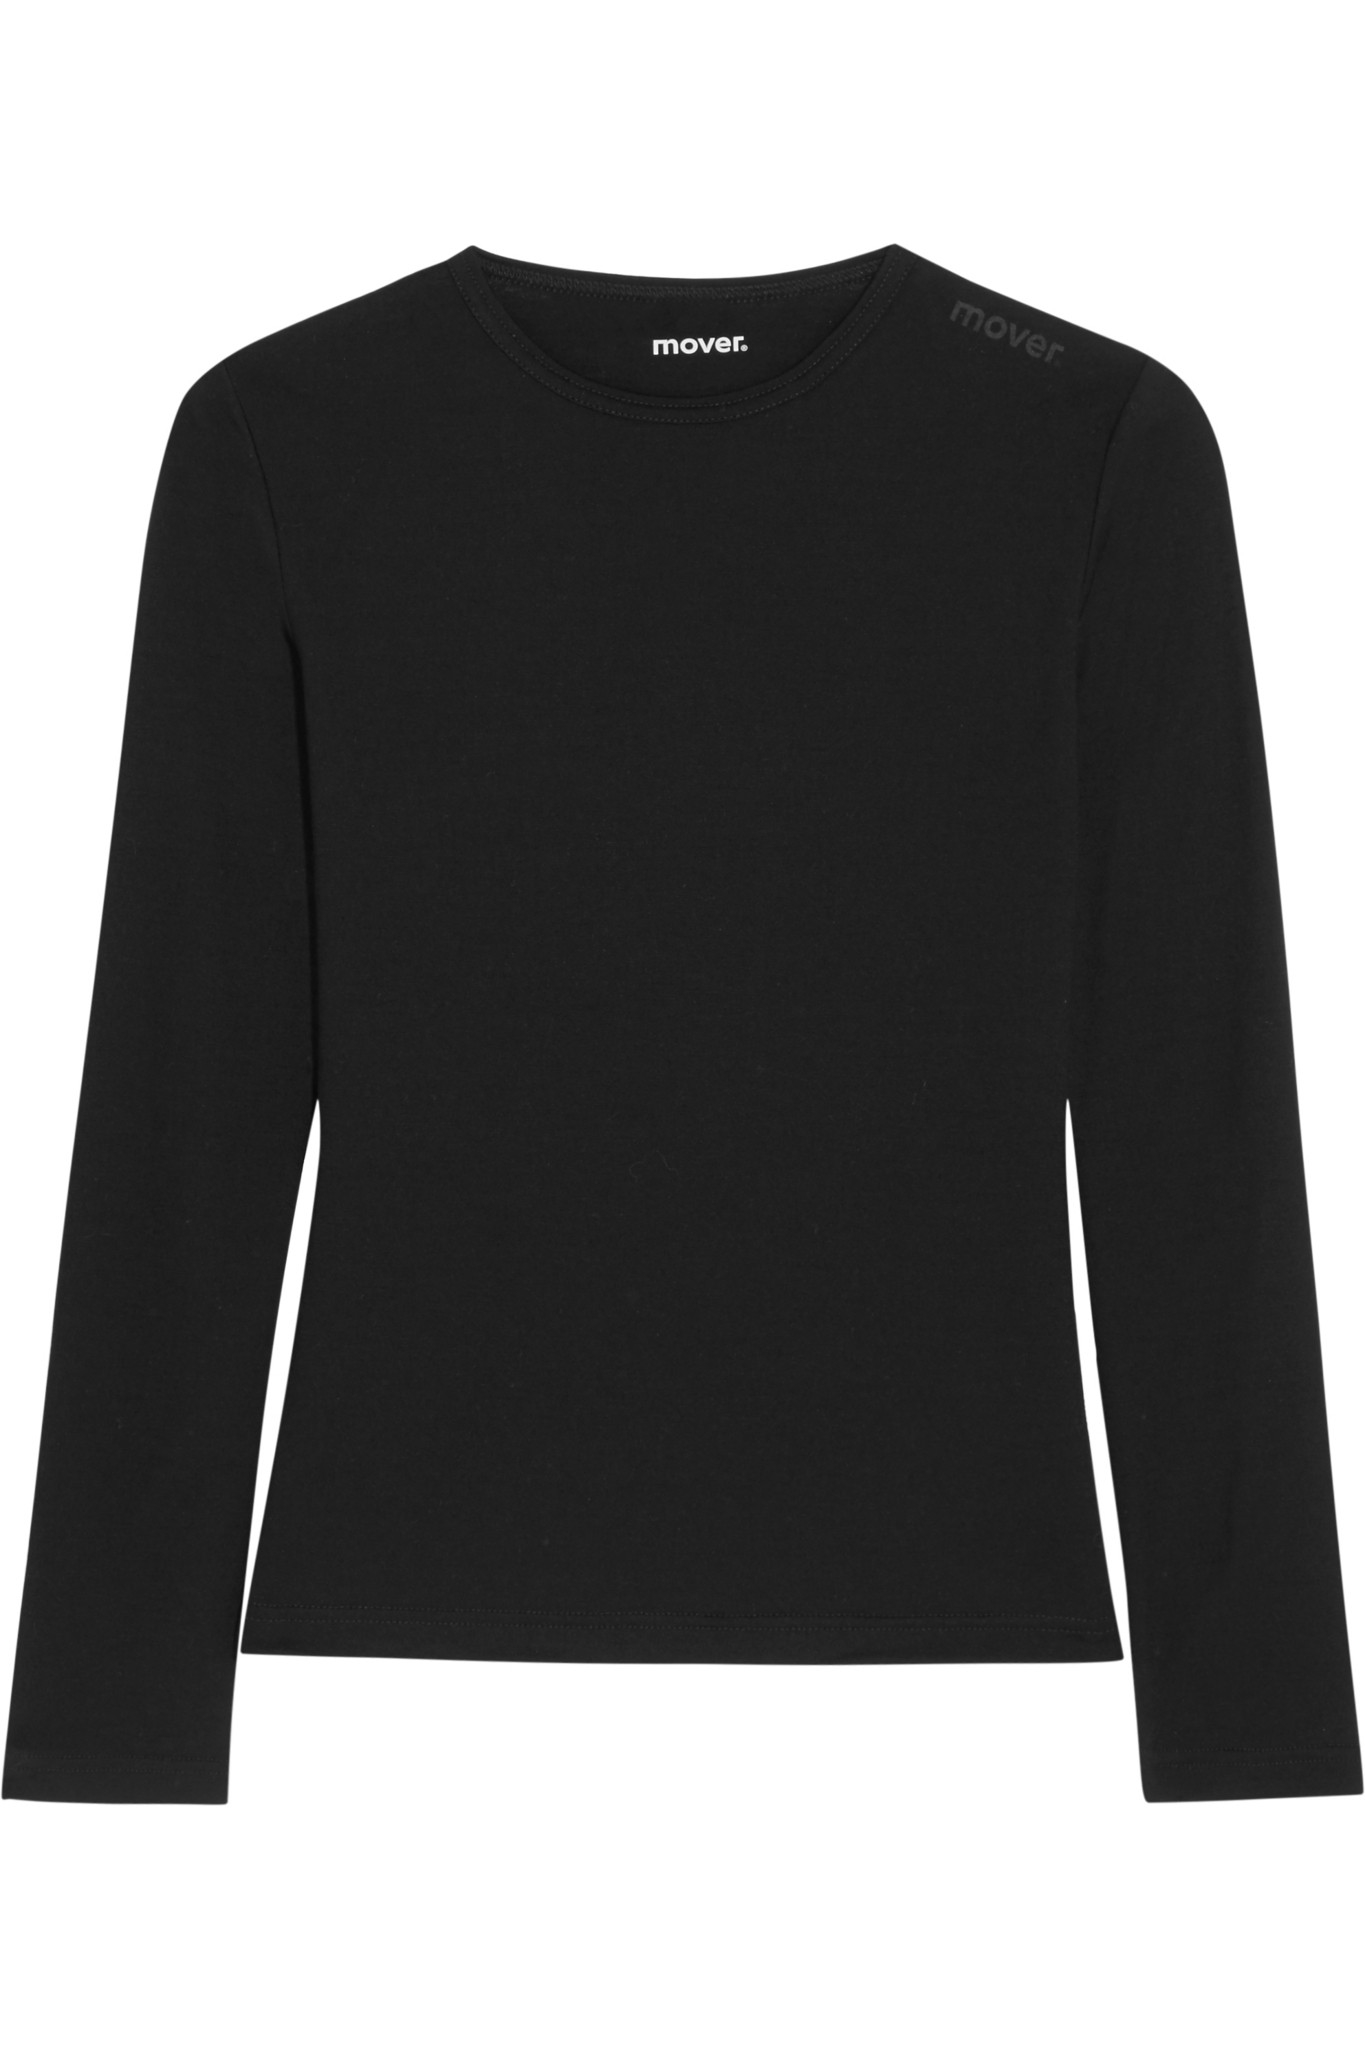 Lyst mover merino wool jersey top in black for Merino wool shirts for travel